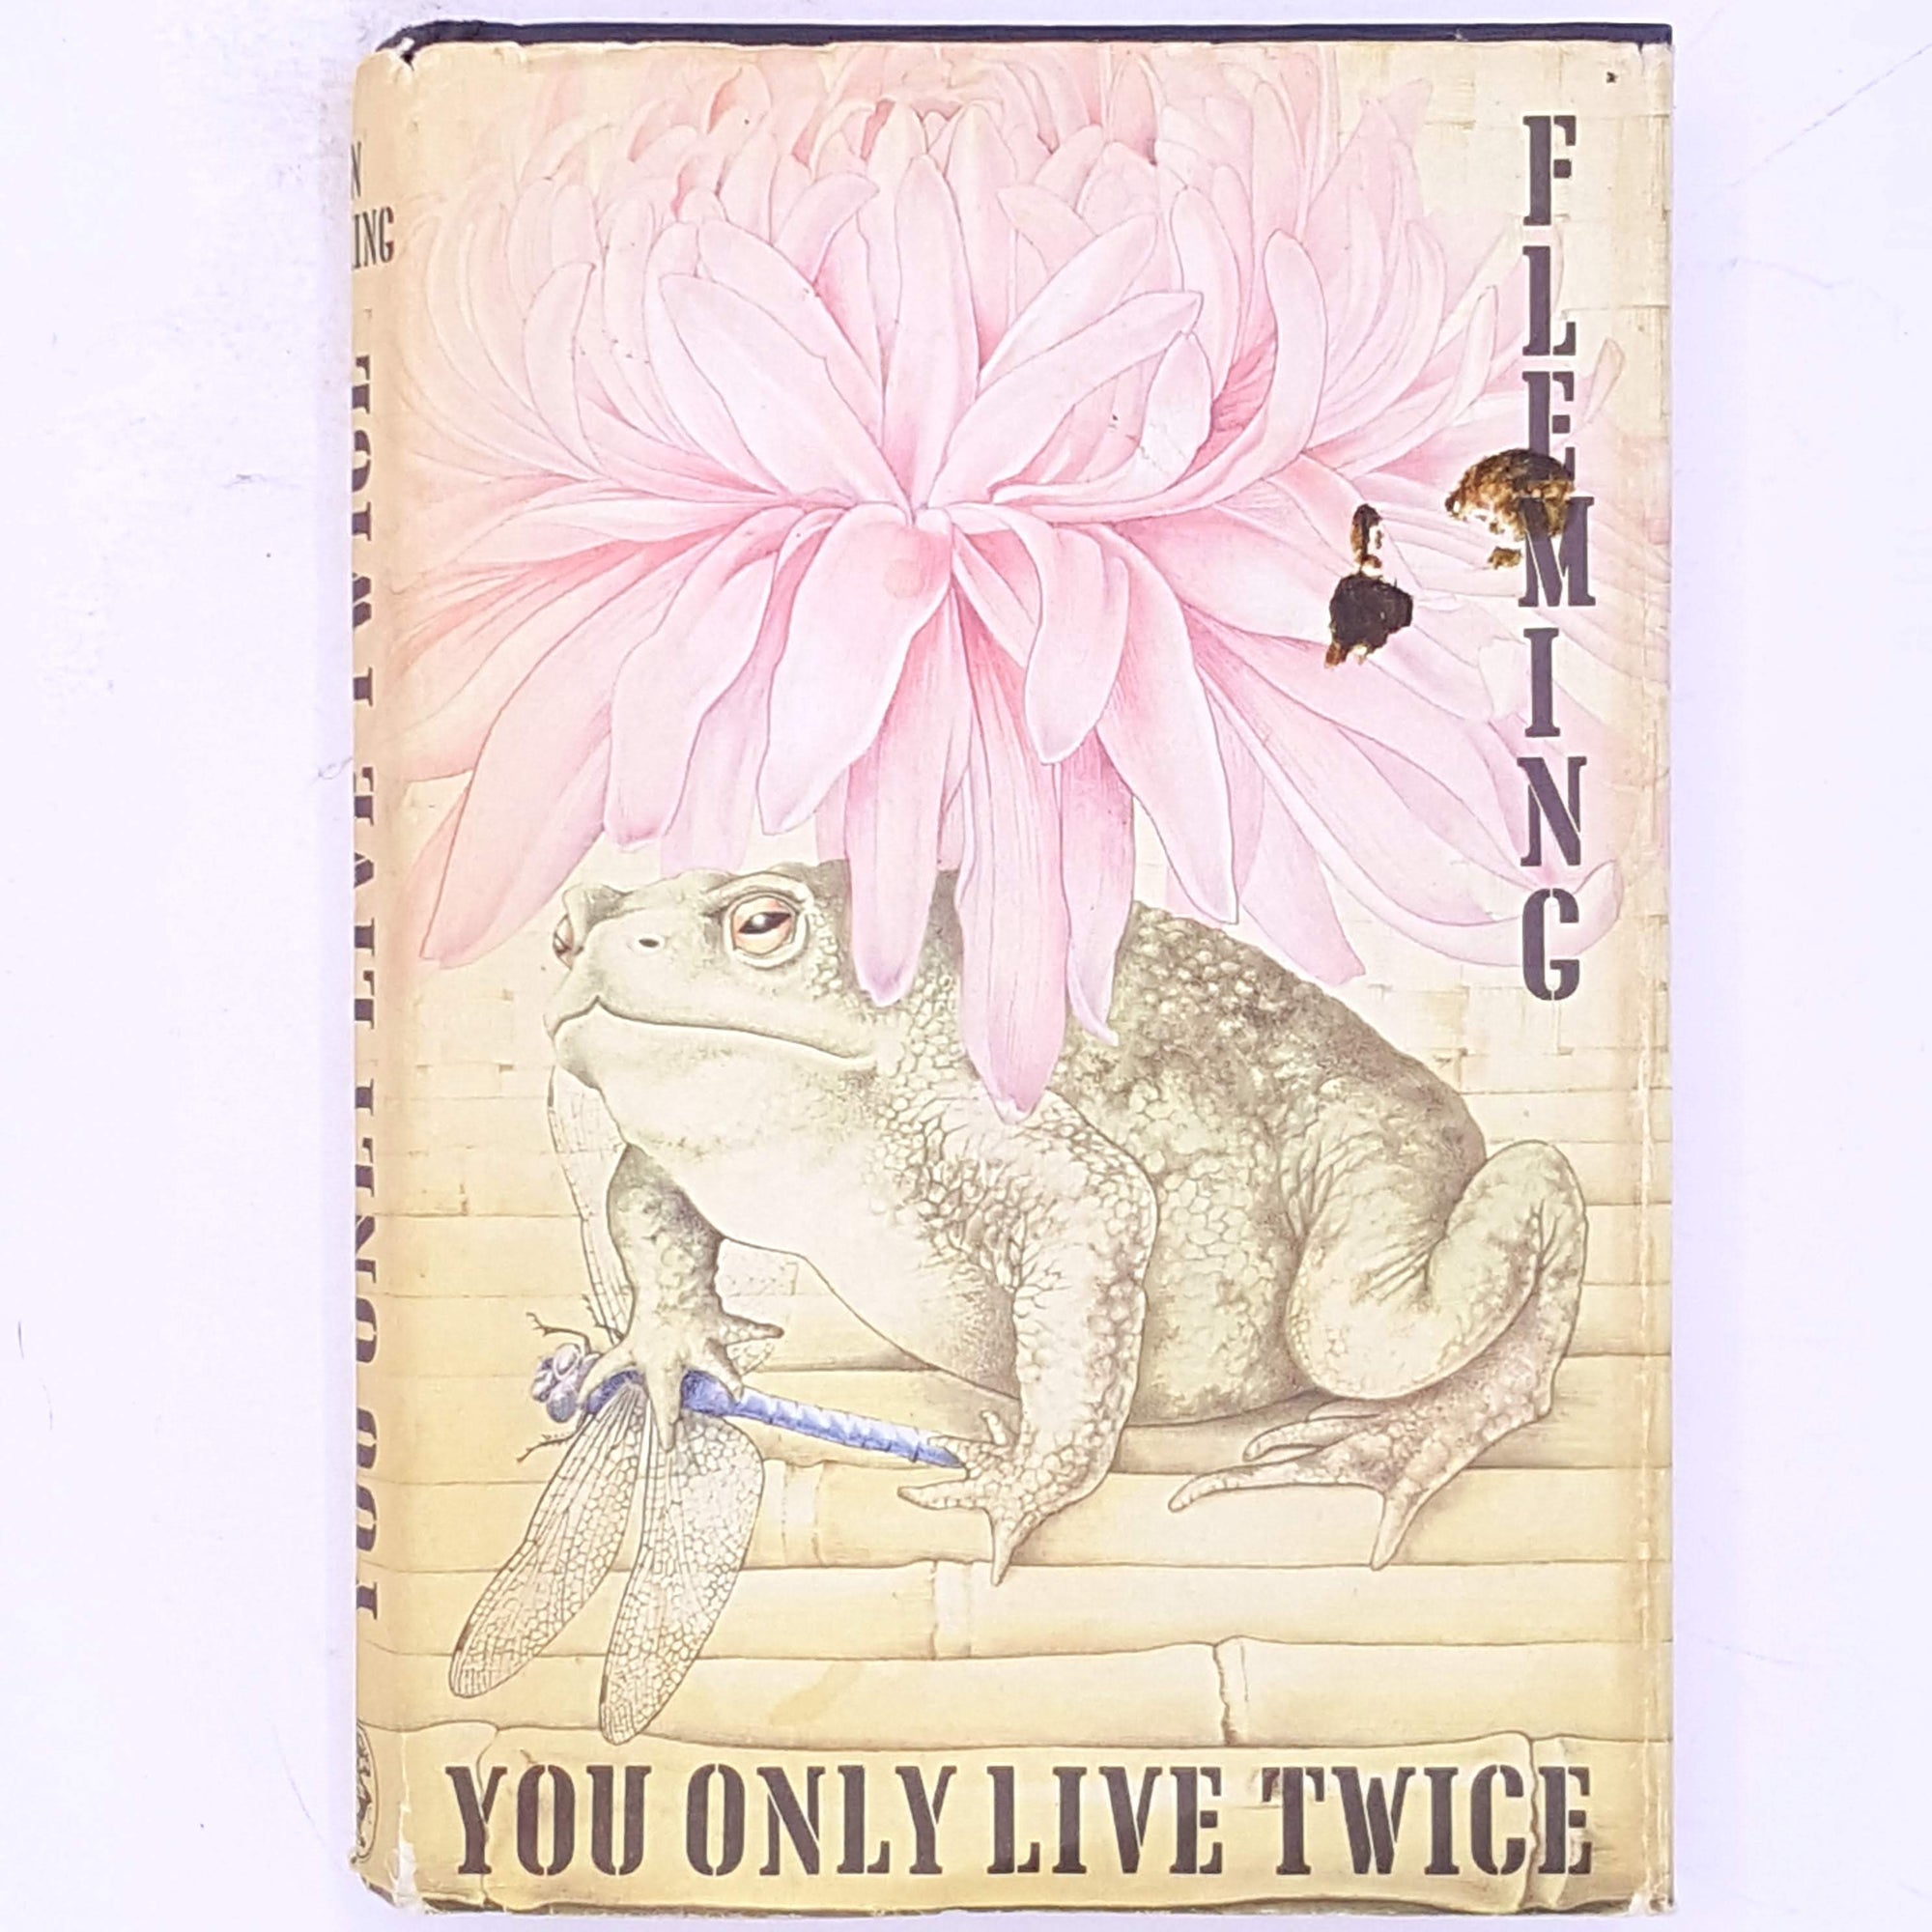 007, You Only Live Twice by Ian Fleming